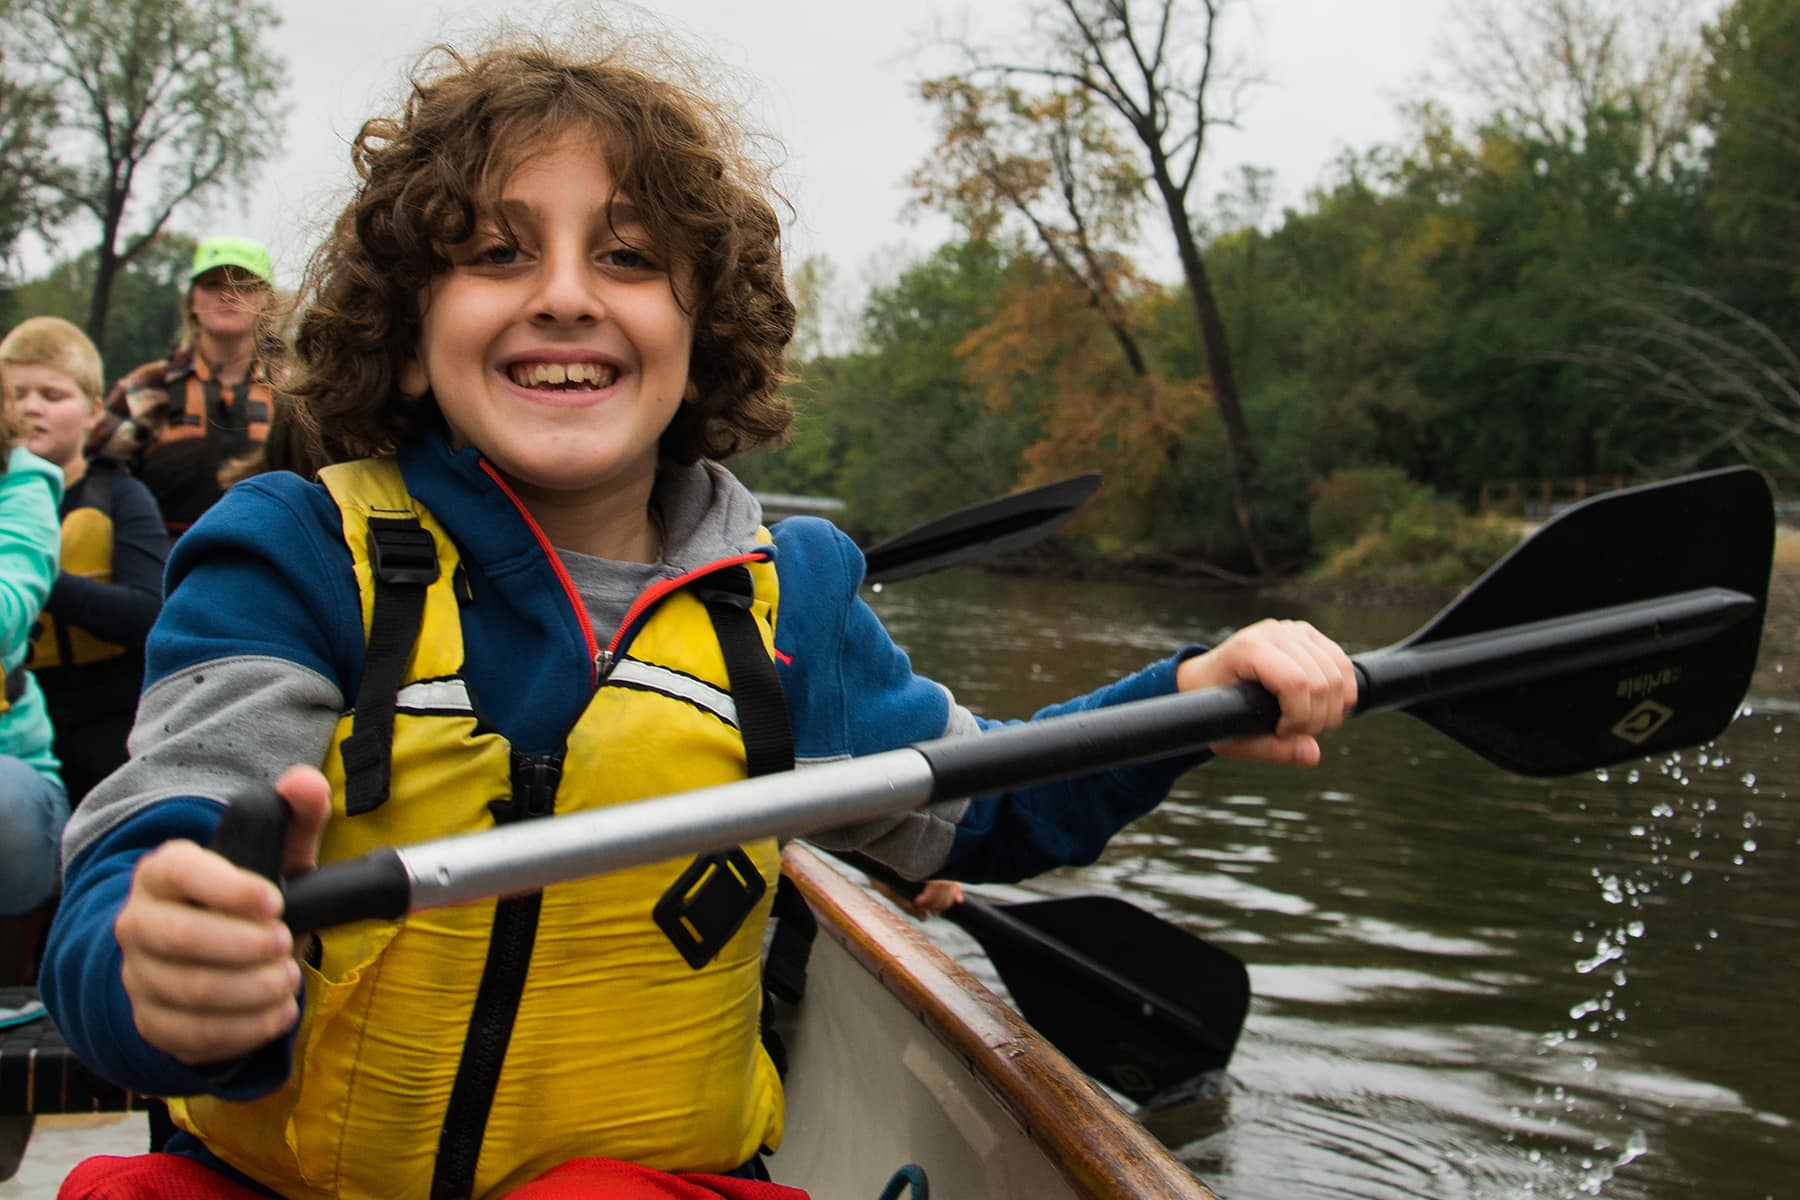 A student enjoys paddling on the Kankakee River.